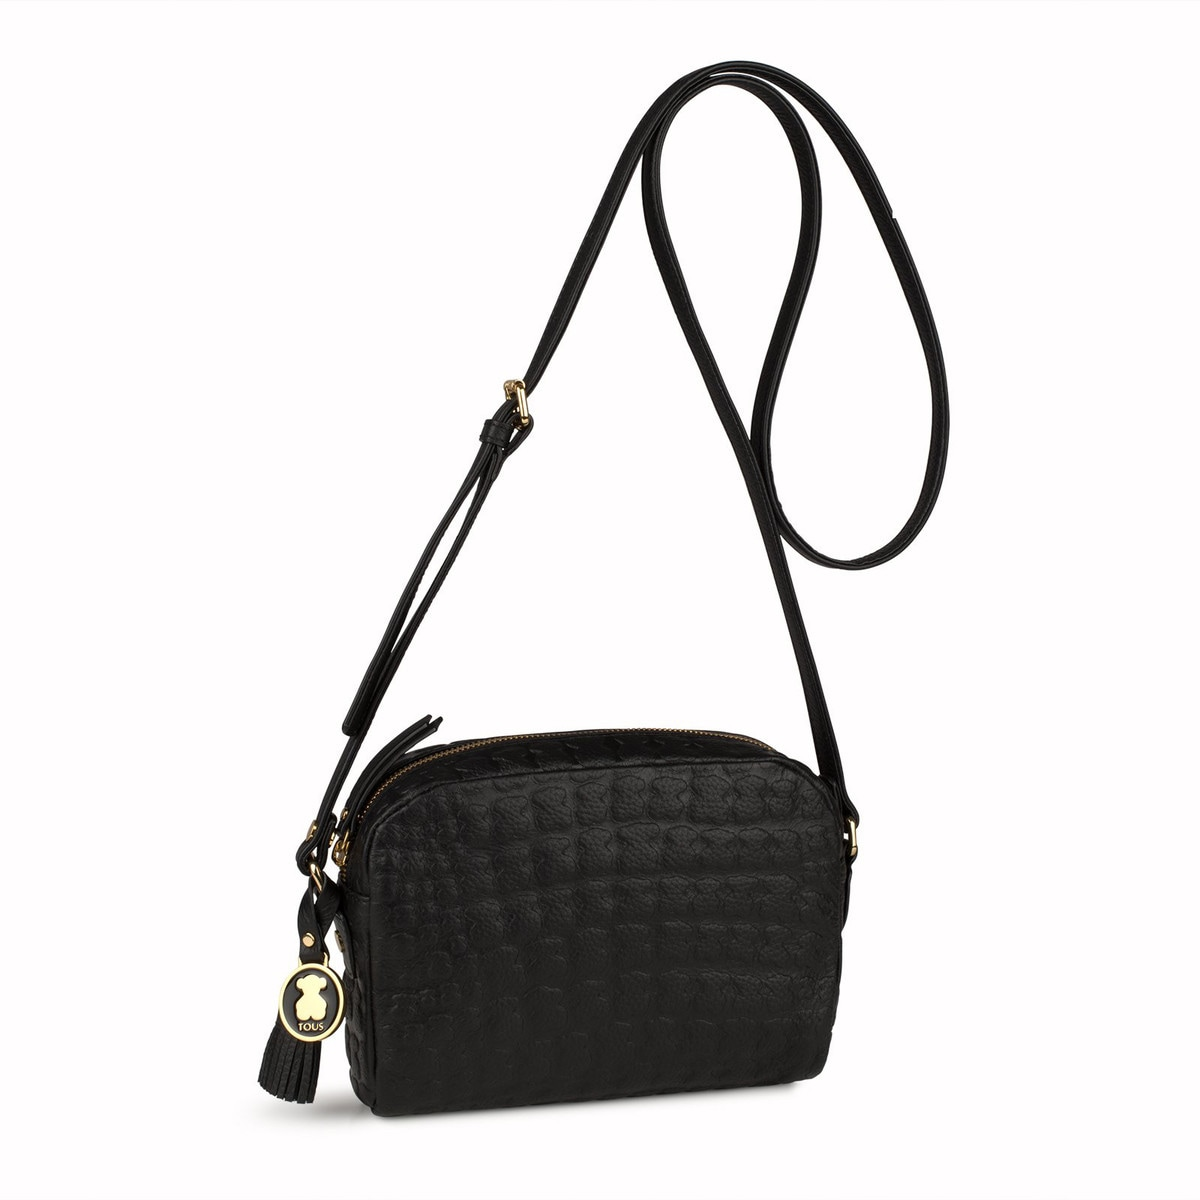 7daae7b3832 Black Leather Sherton Crossbody bag - Tous Site GB